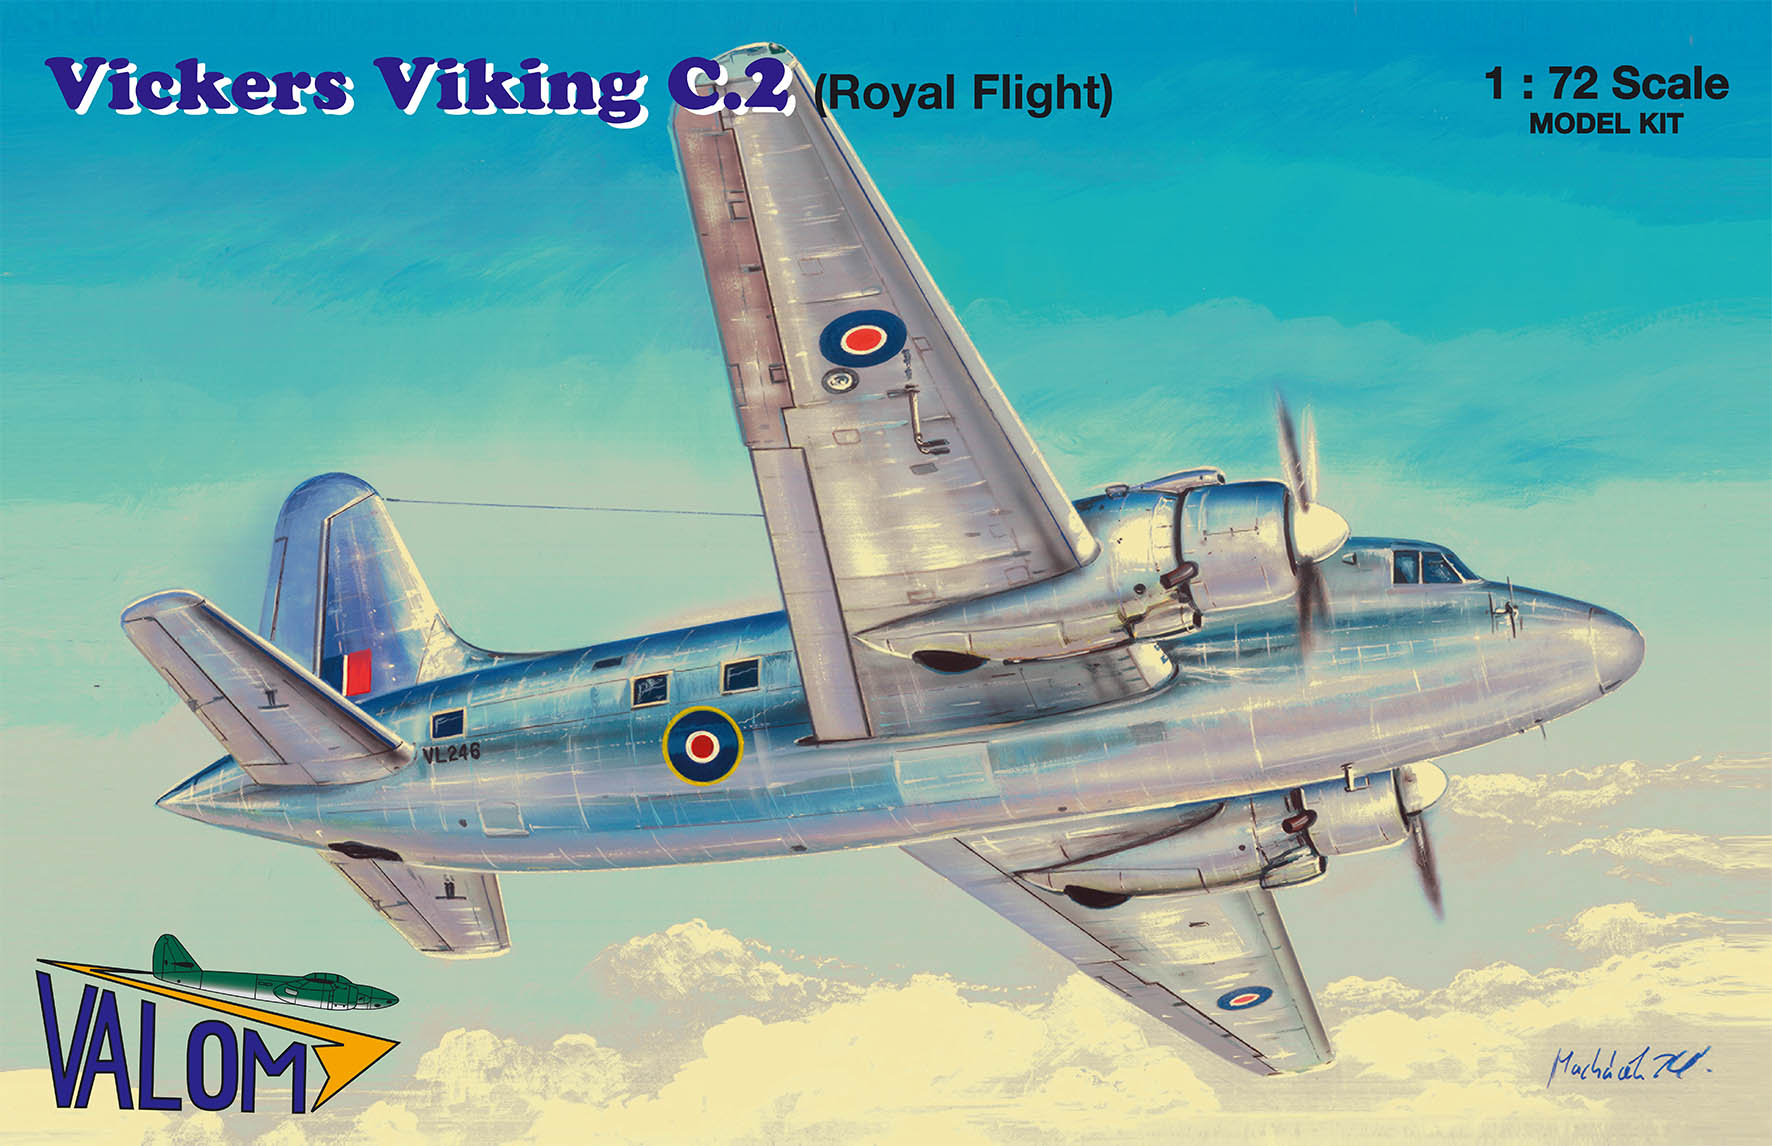 Valom Vickers Viking C.2 (Royal Flight)